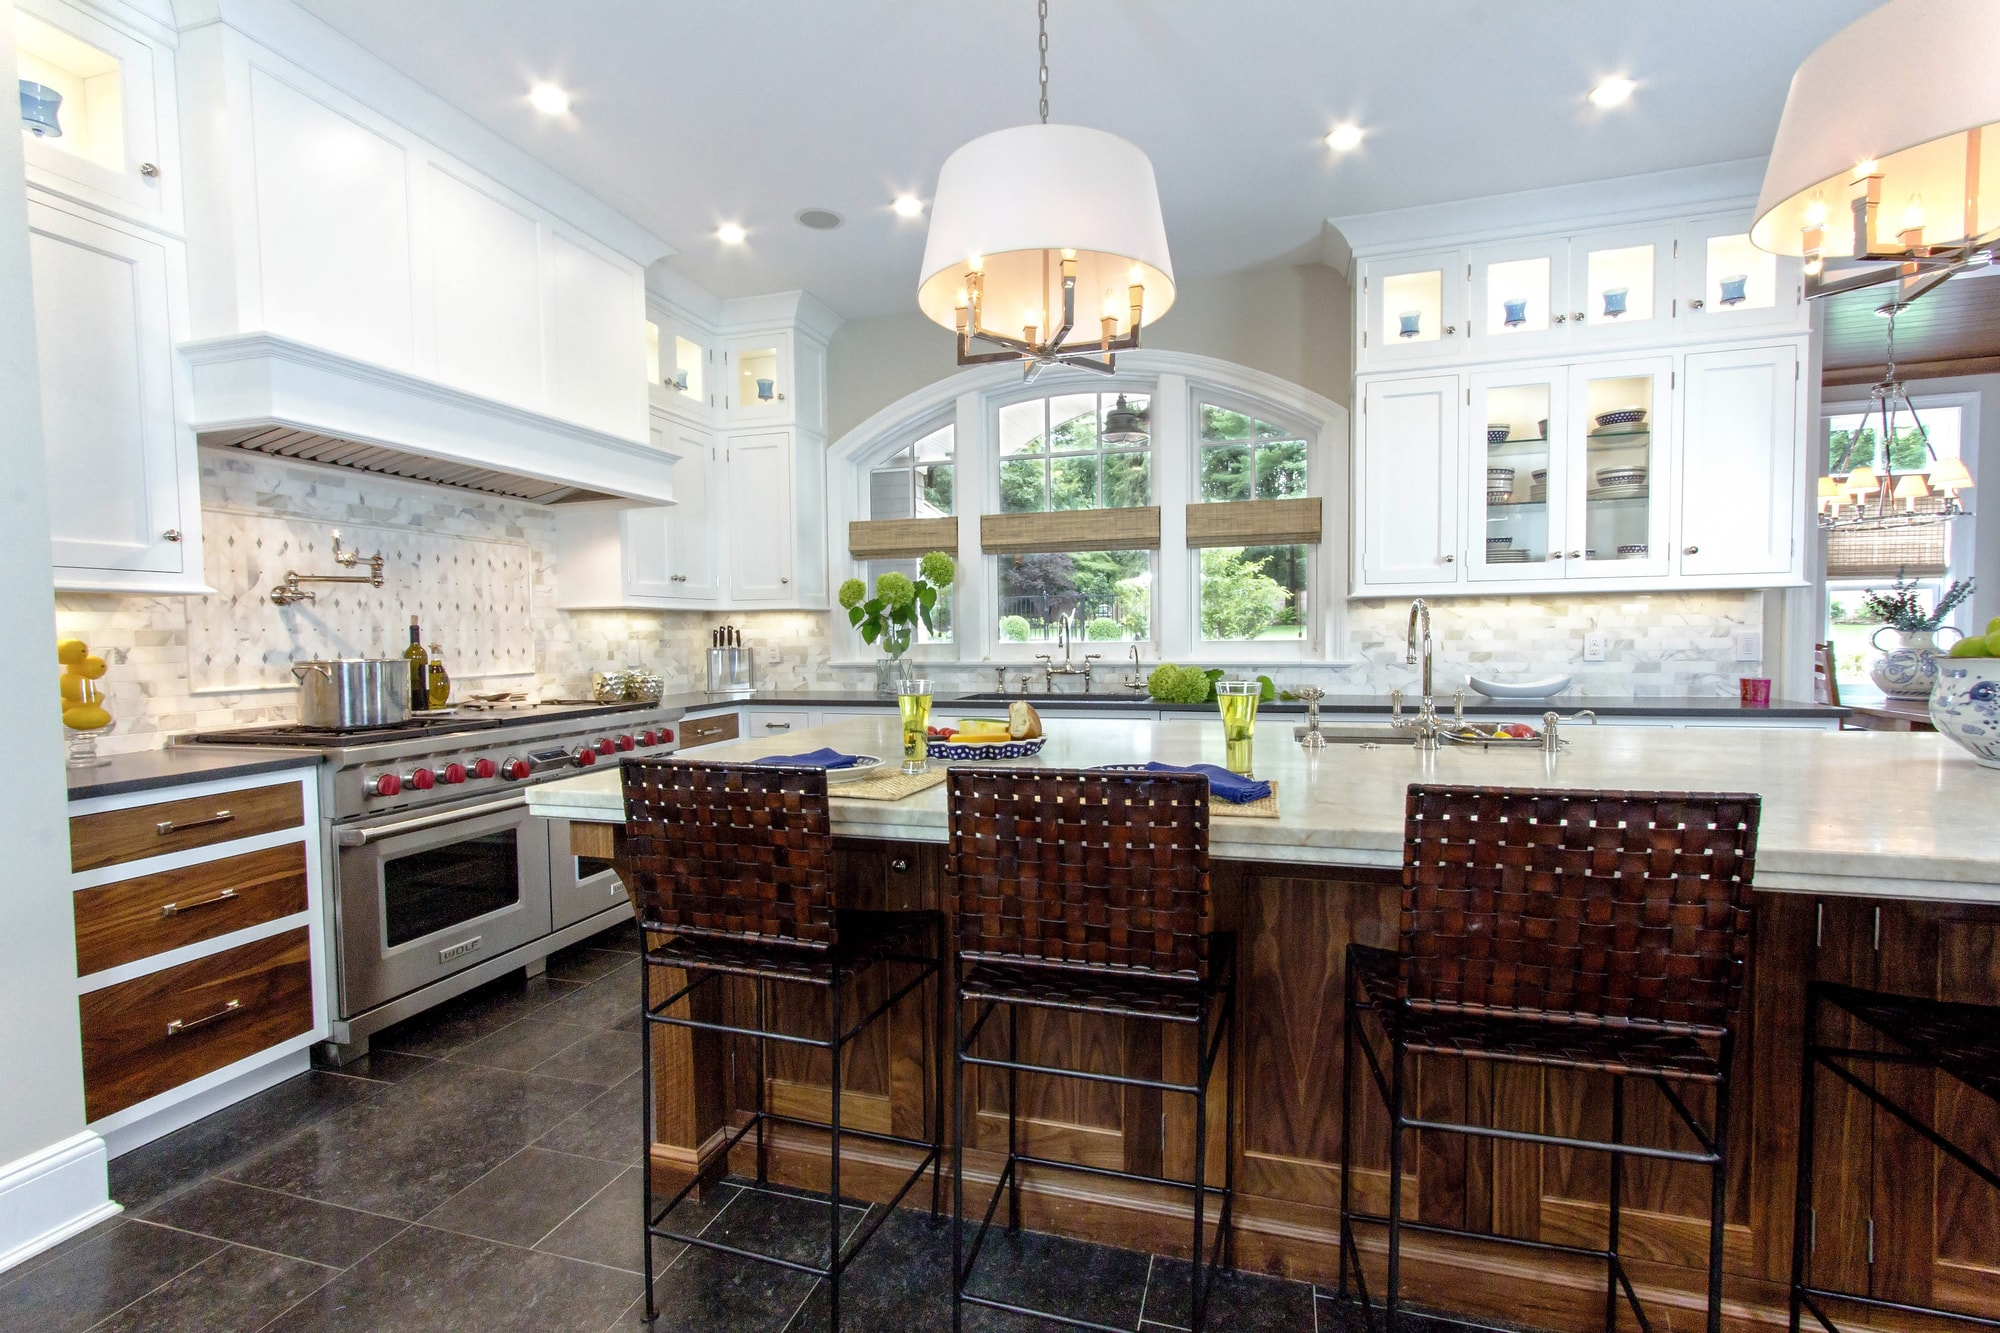 Transitional style kitchen with center kitchen island